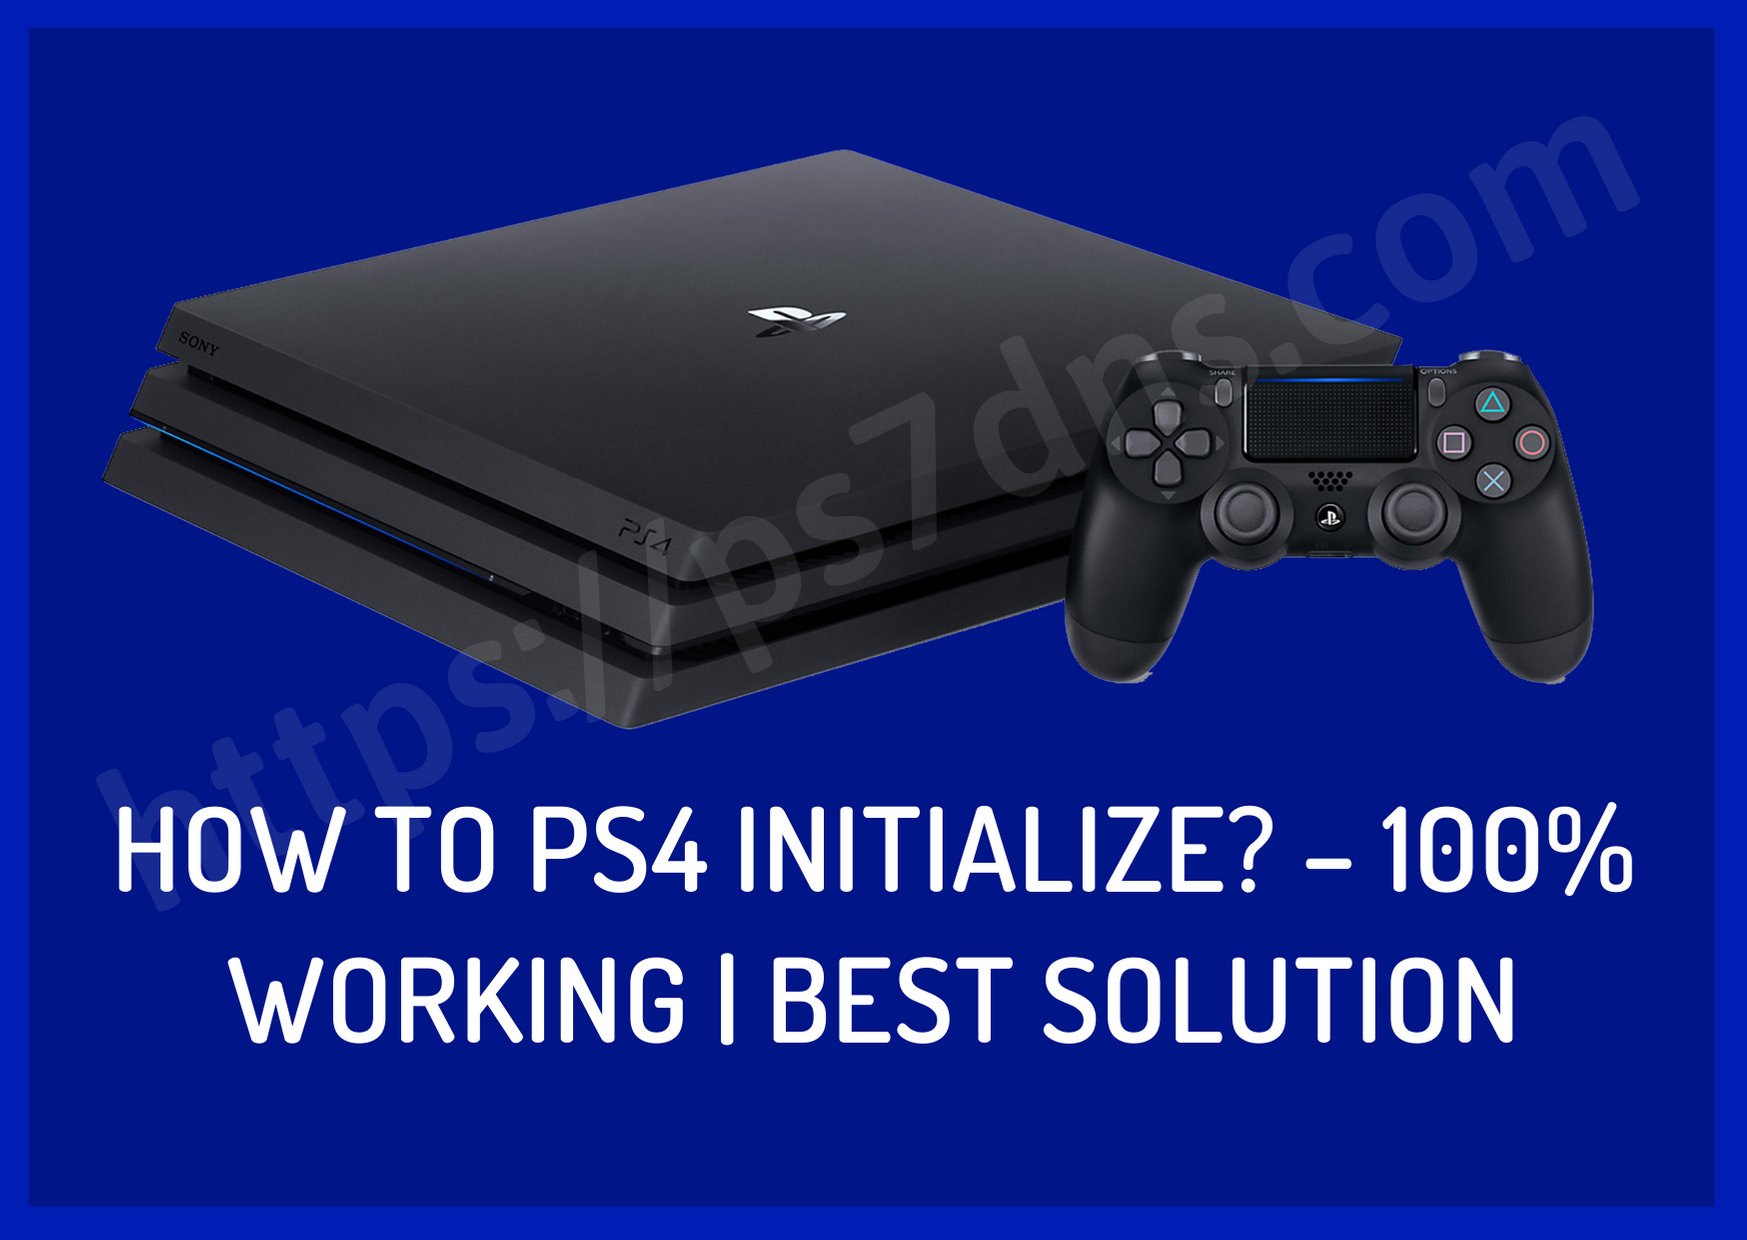 How to PS4 Initialize? – 100% Working | Best Solution